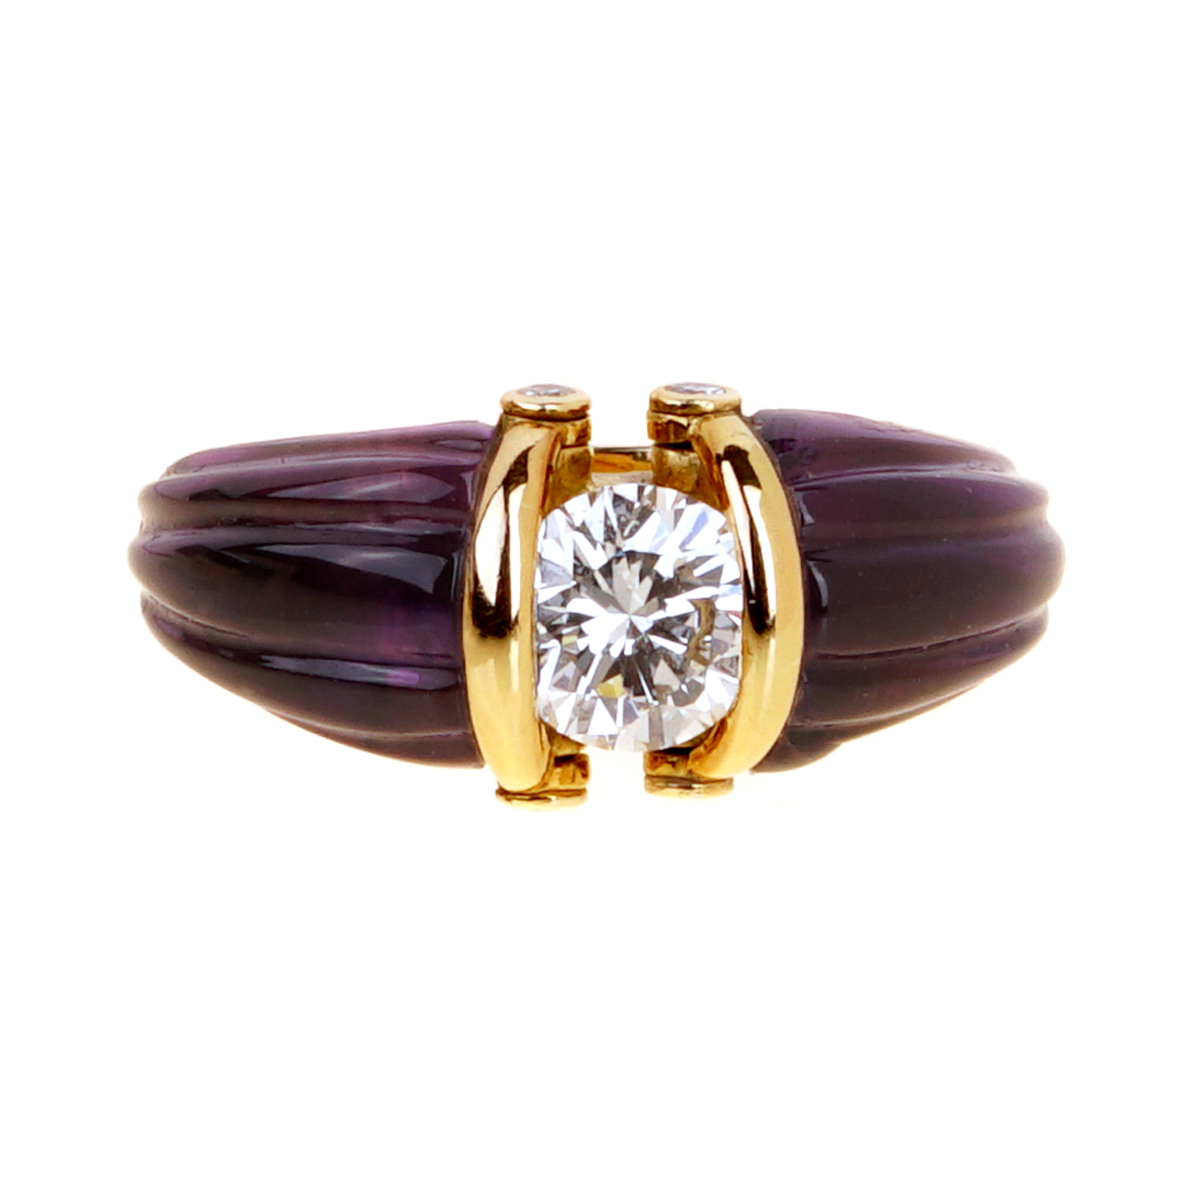 Dior Carved Amethyst Diamond Solitaire Ring - Dior Jewelry